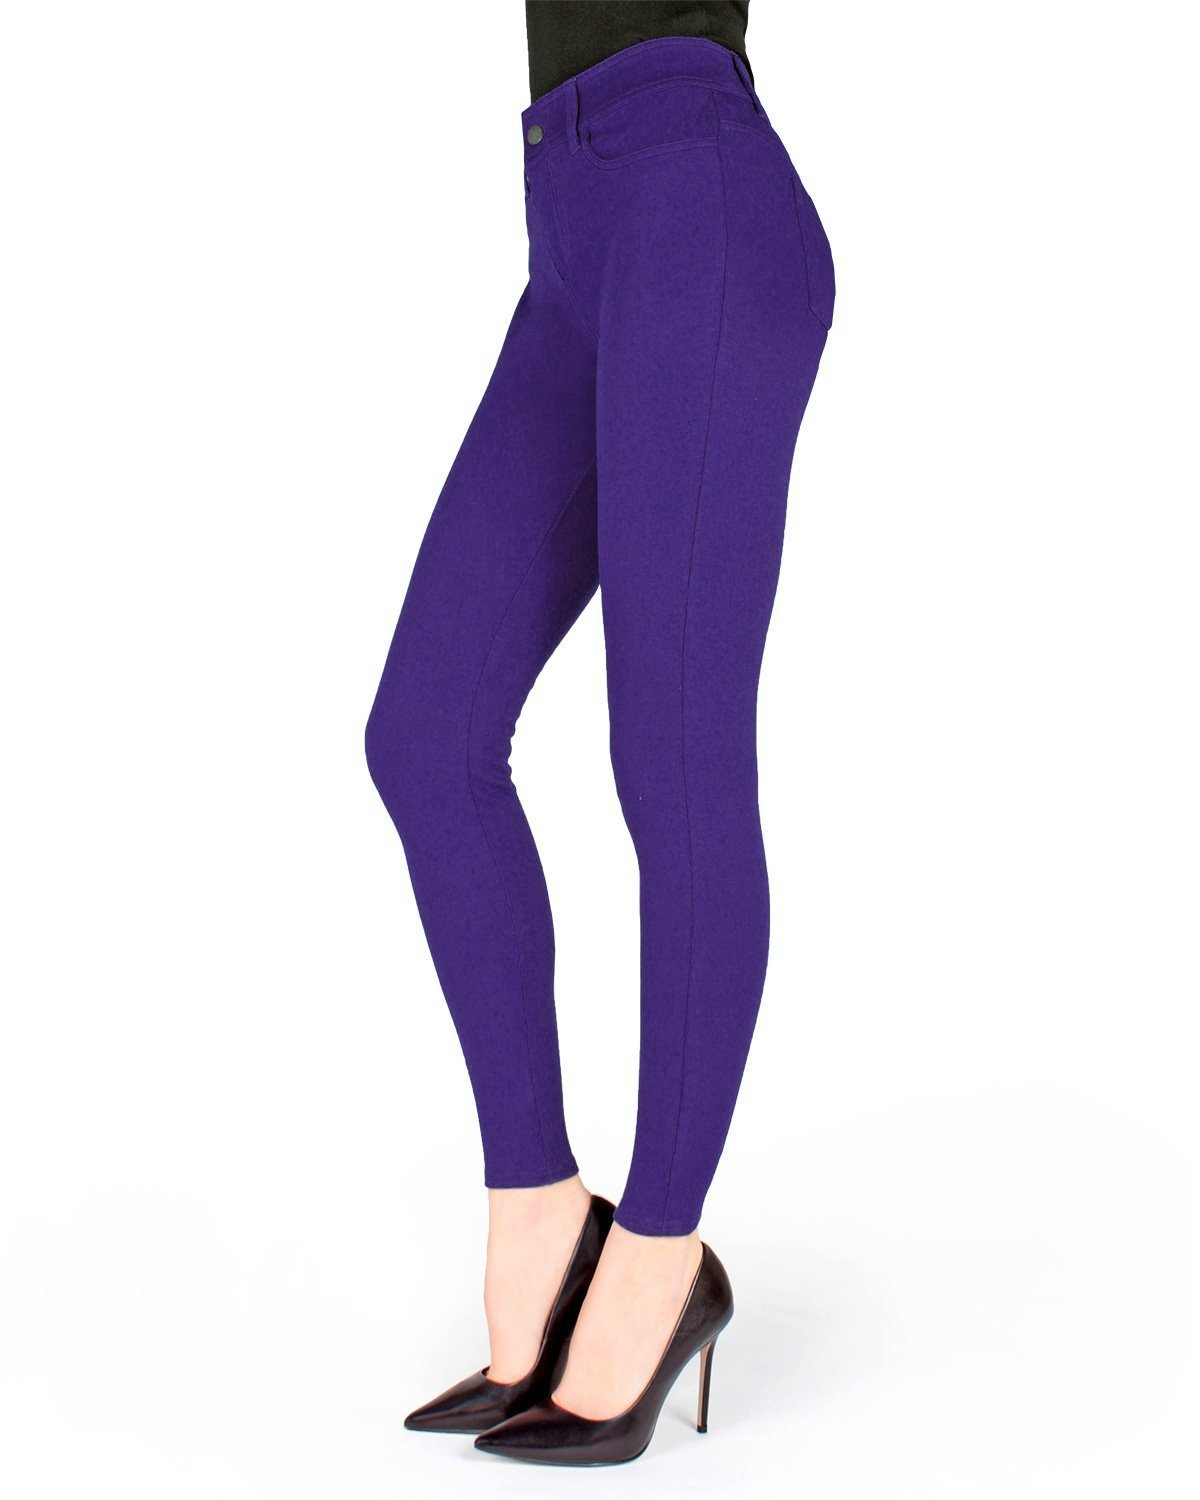 MeMoi Pants-Style Ponte Leggings | Women's Premium Fashion Leggings Purple Grape MQ 014 X Large